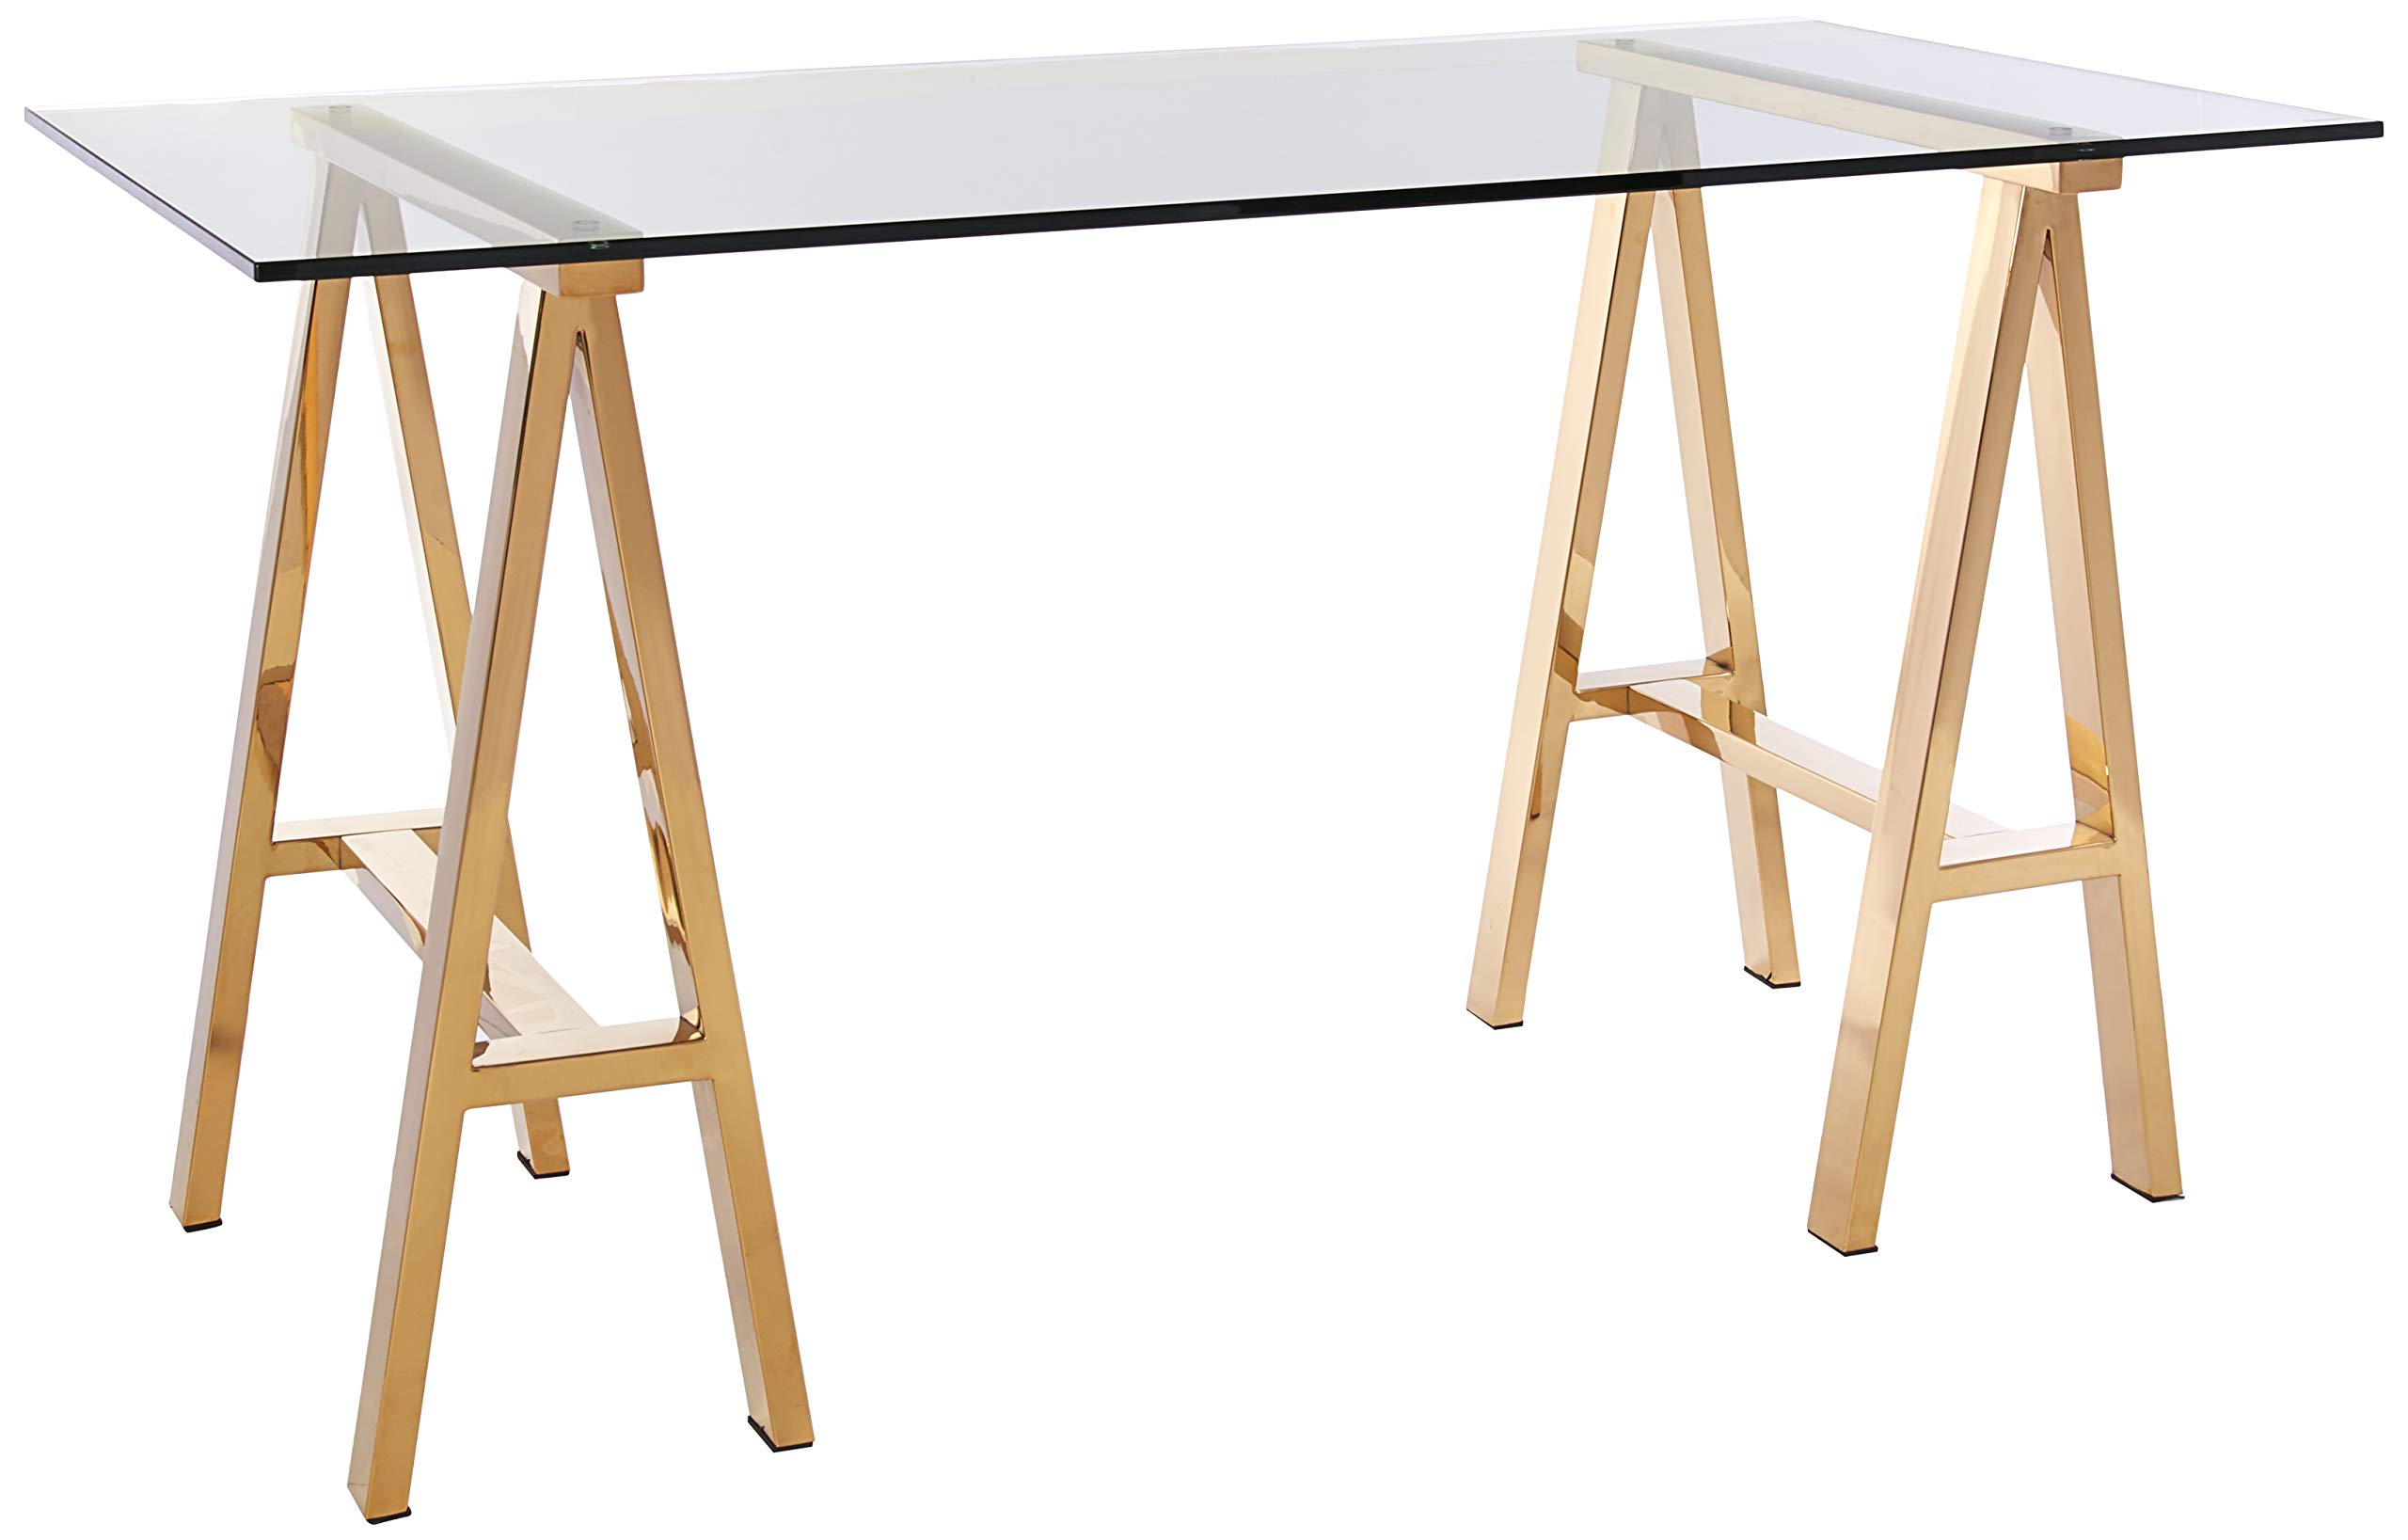 Pangea Home ZBRDY-DSK S GLD Brady Desk, Small, High Polish Gold - Manufacturer: Pangea Home Material Type: Stainless Steel and Tempered Glass Color name: High Polish Gold - writing-desks, living-room-furniture, living-room - 7131ztrphoL -